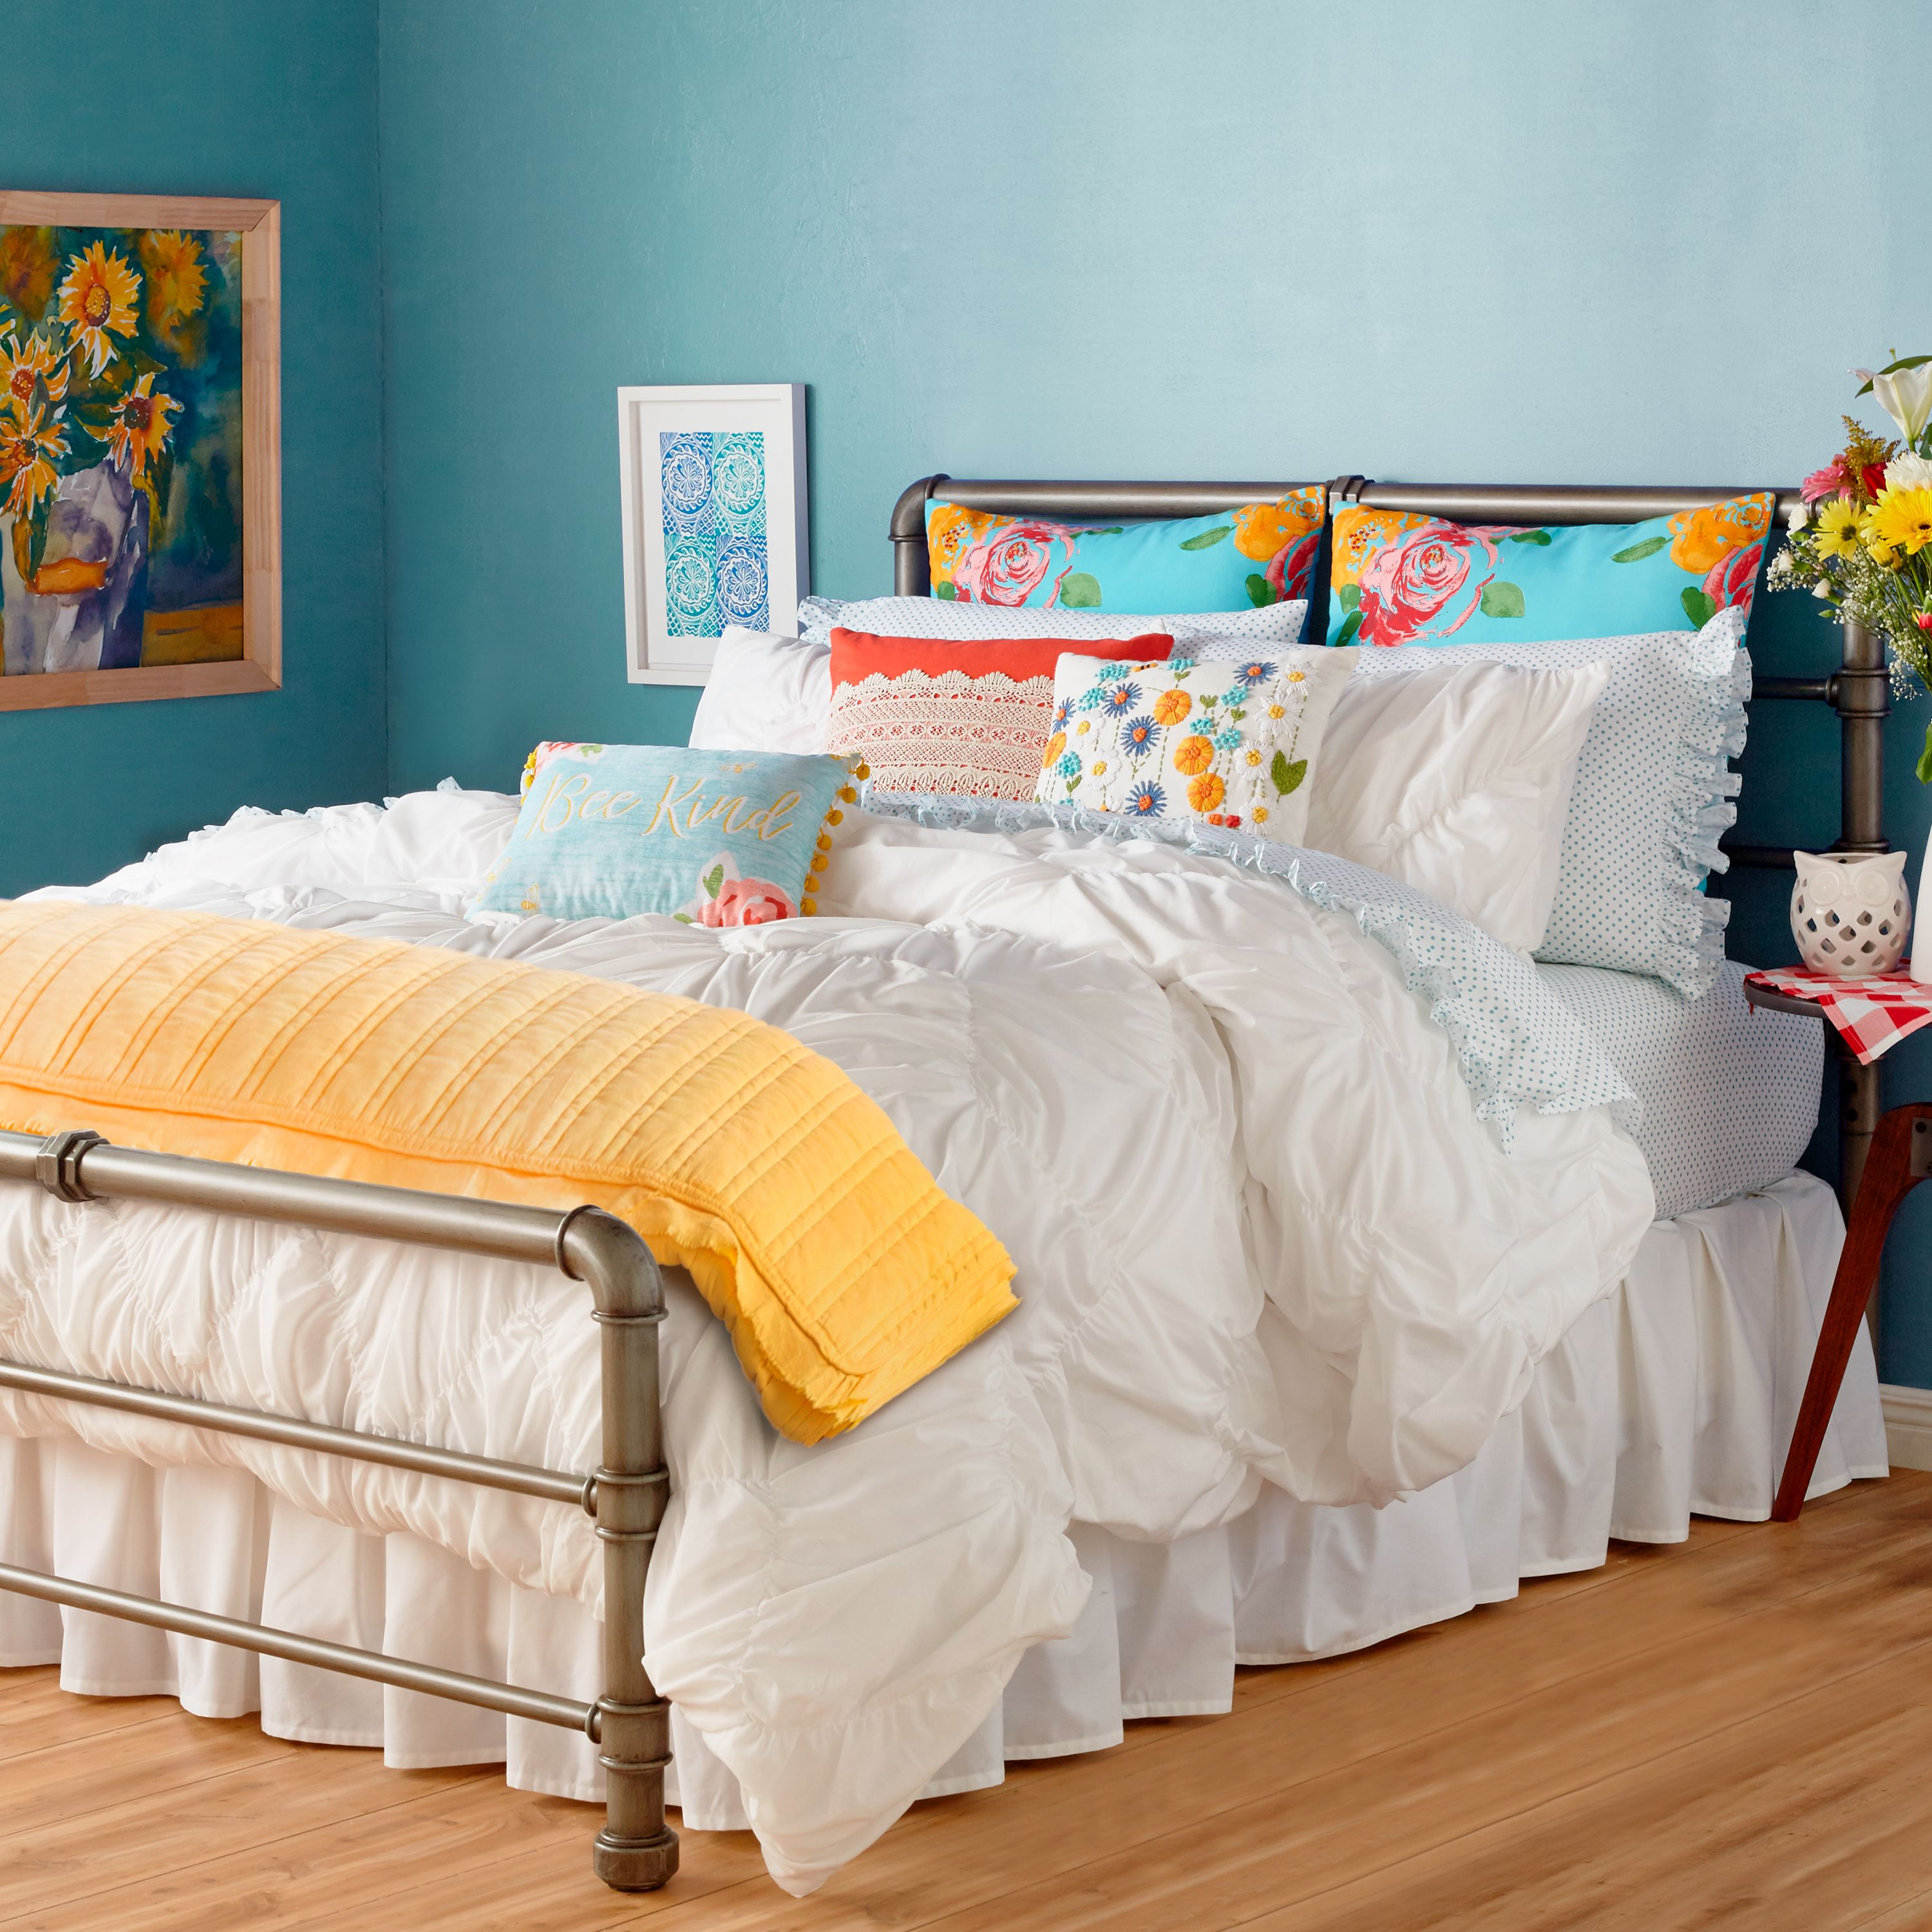 The Pioneer Woman Ruched Chevron Duvet Cover, White